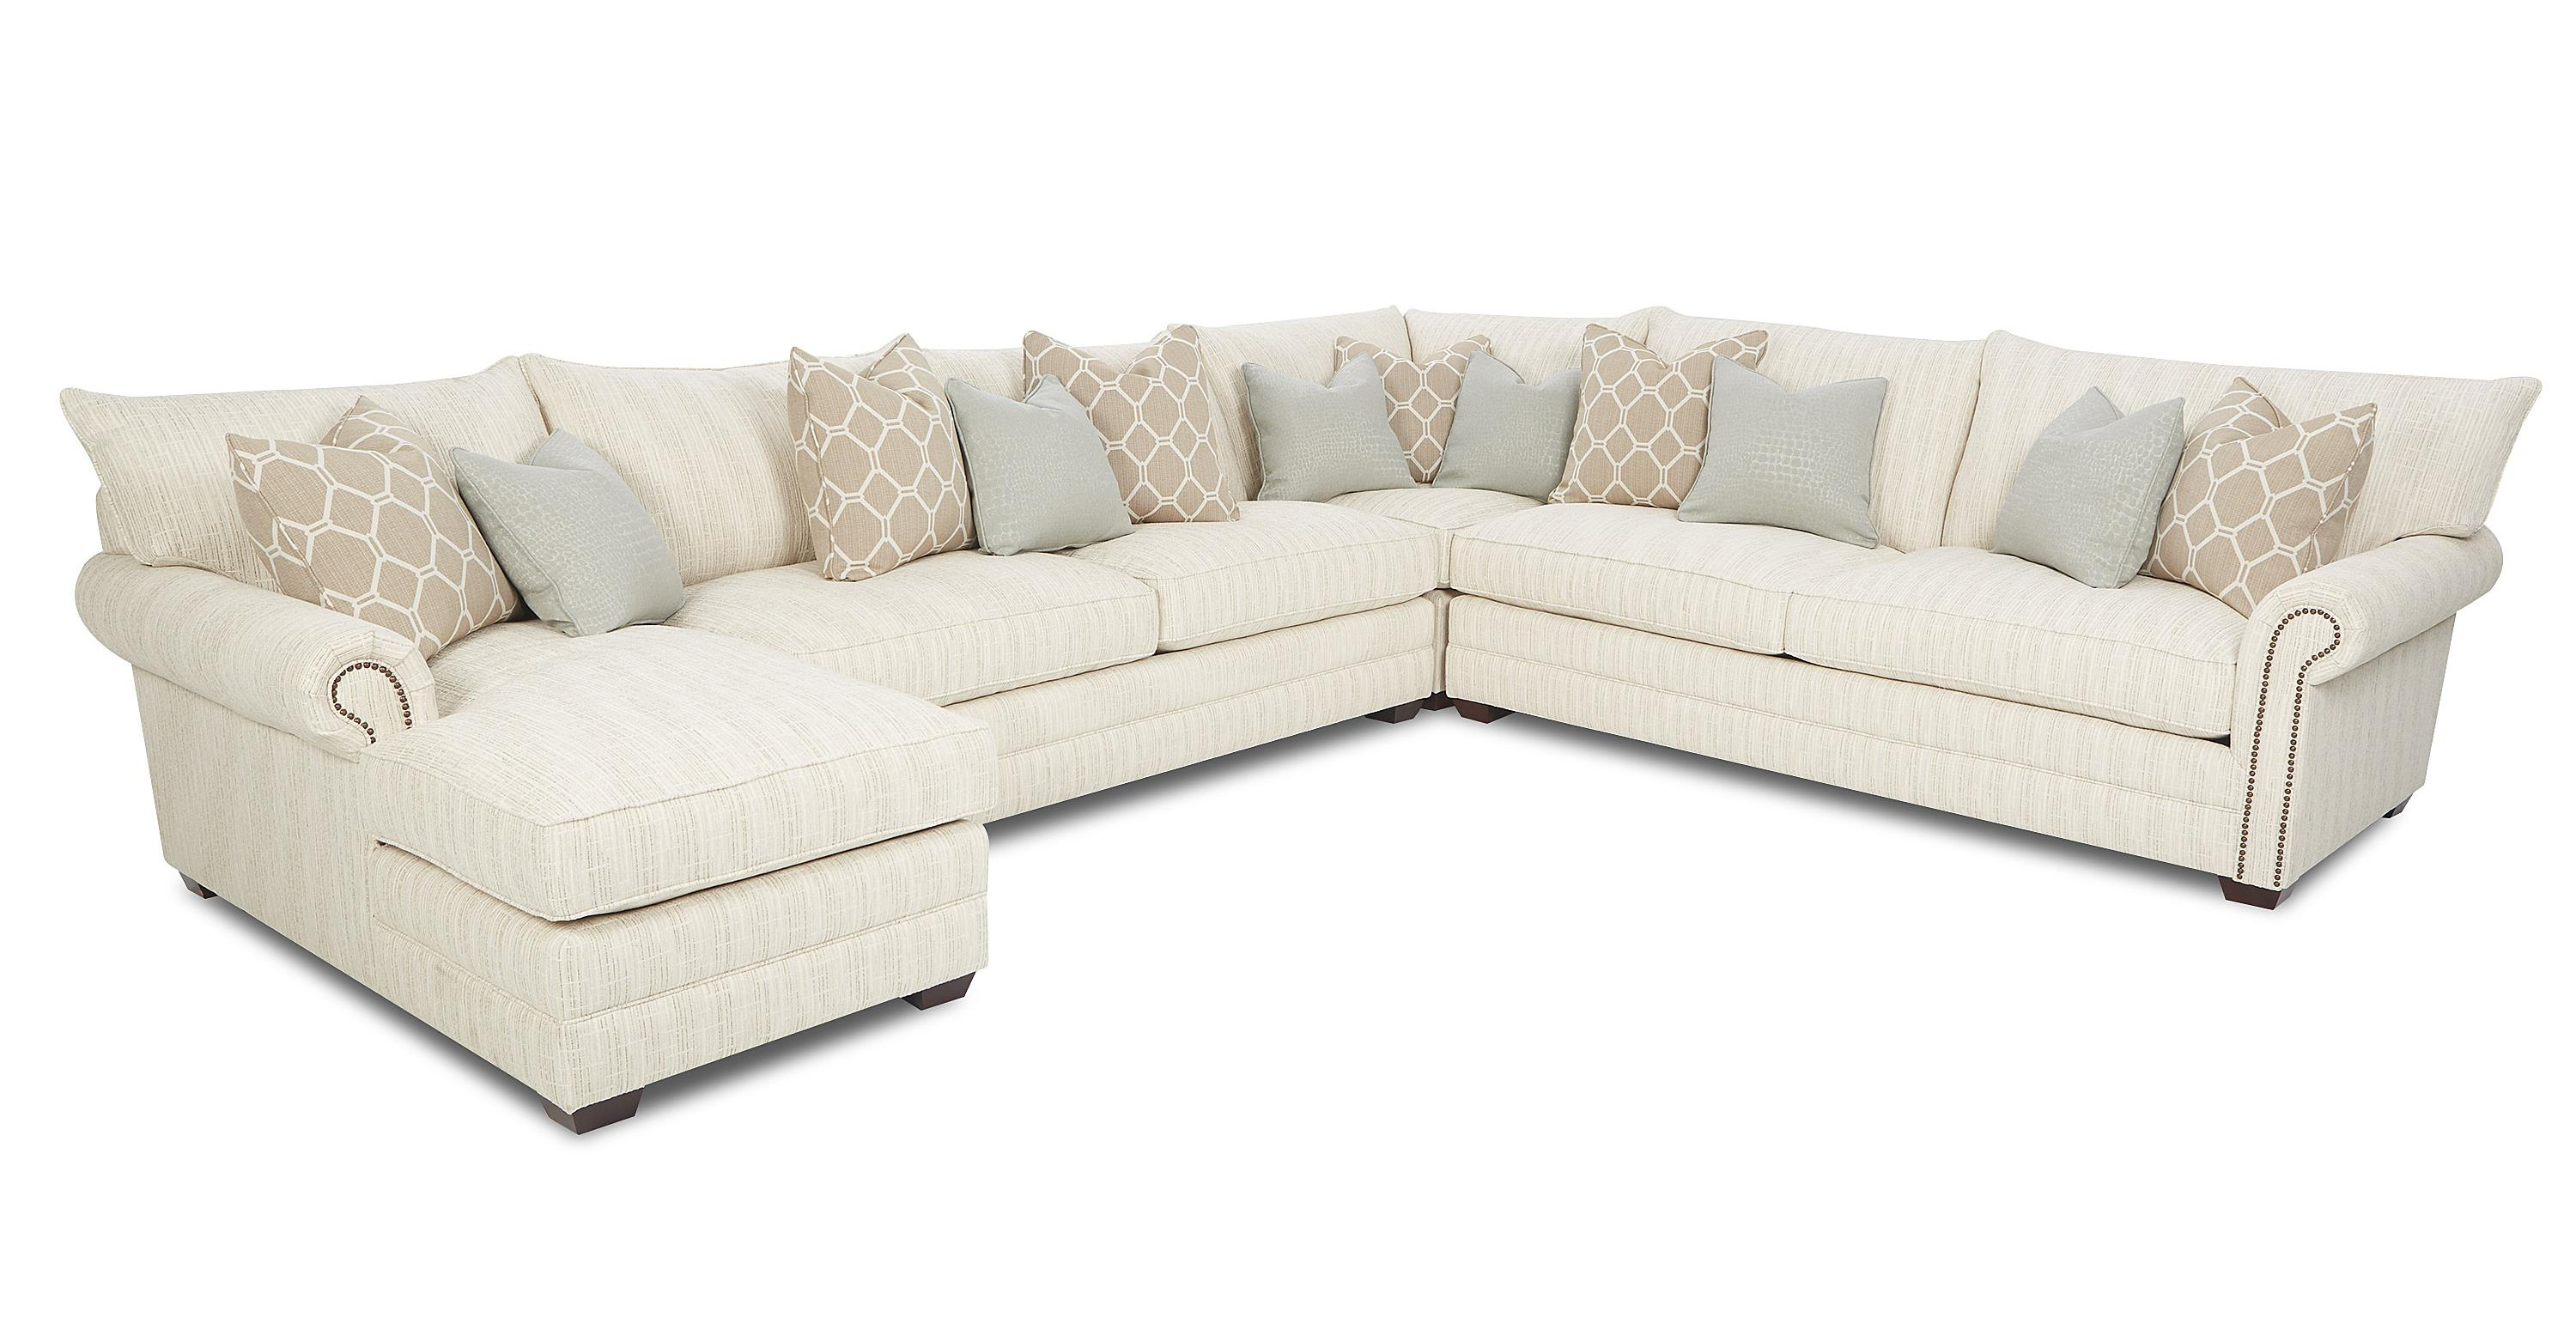 Klaussner Huntley Traditional Sectional Sofa   Item Number: D41610L  CHASE+AS+CORN+